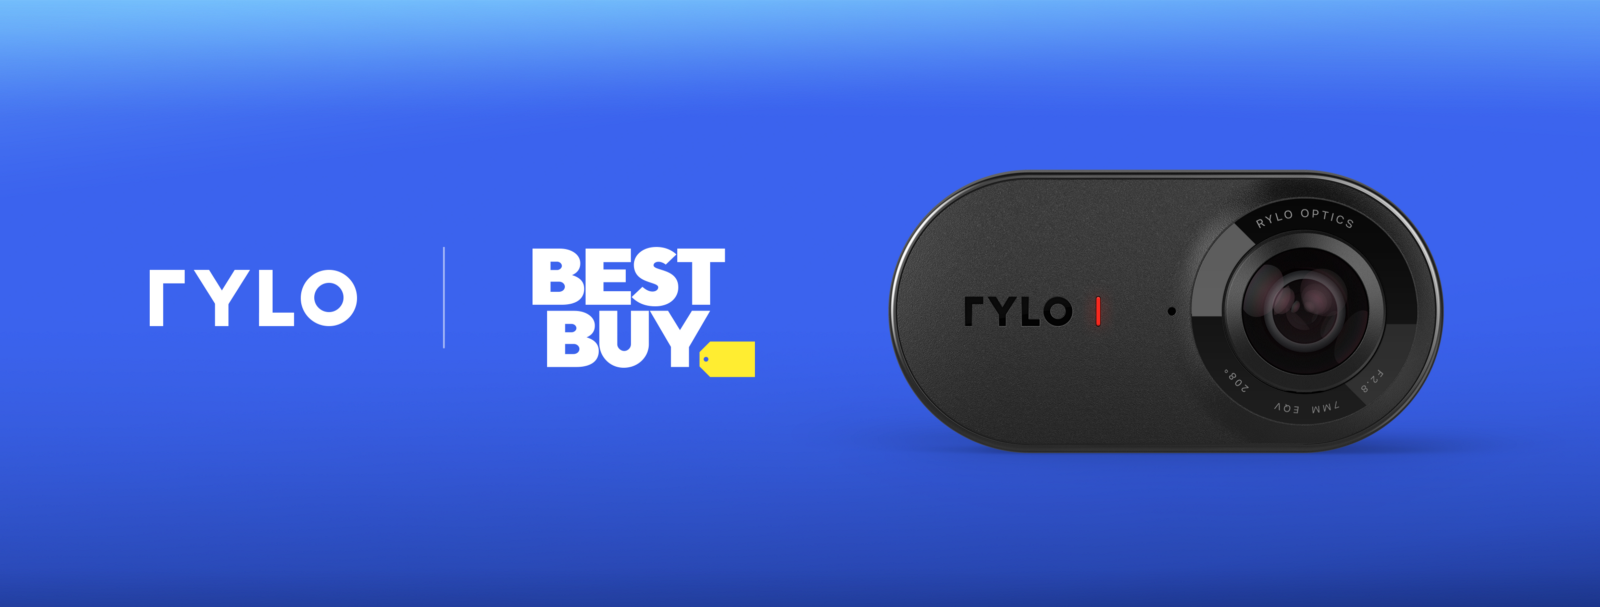 visit one of best buys camera experience shops to explore rylos top features in person and speak with a best buy associate who can show you just how easy - Is Best Buy Open Christmas Day